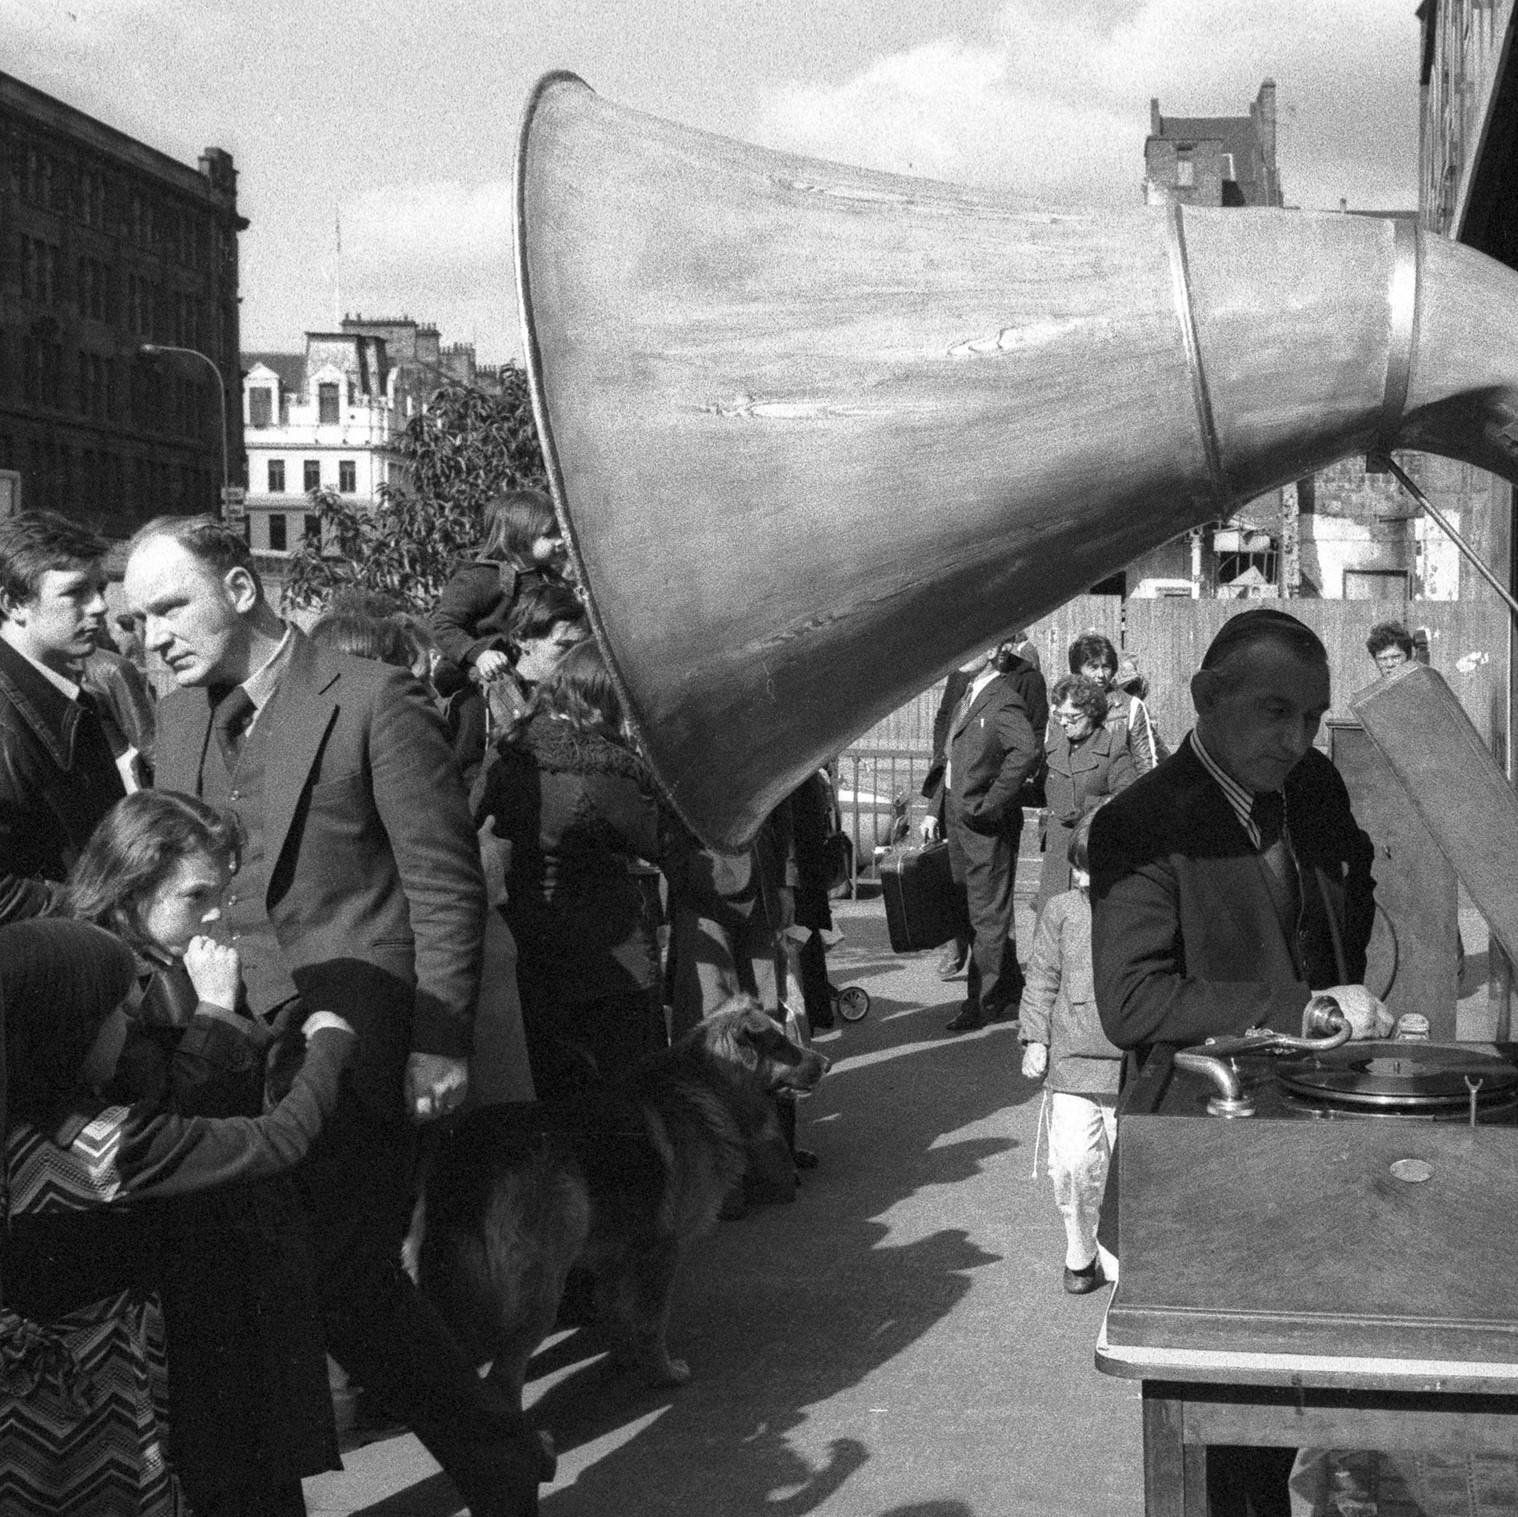 Image of Untitled, from 'Glasgow 1974'  (Gramophone) by Hugh Hood